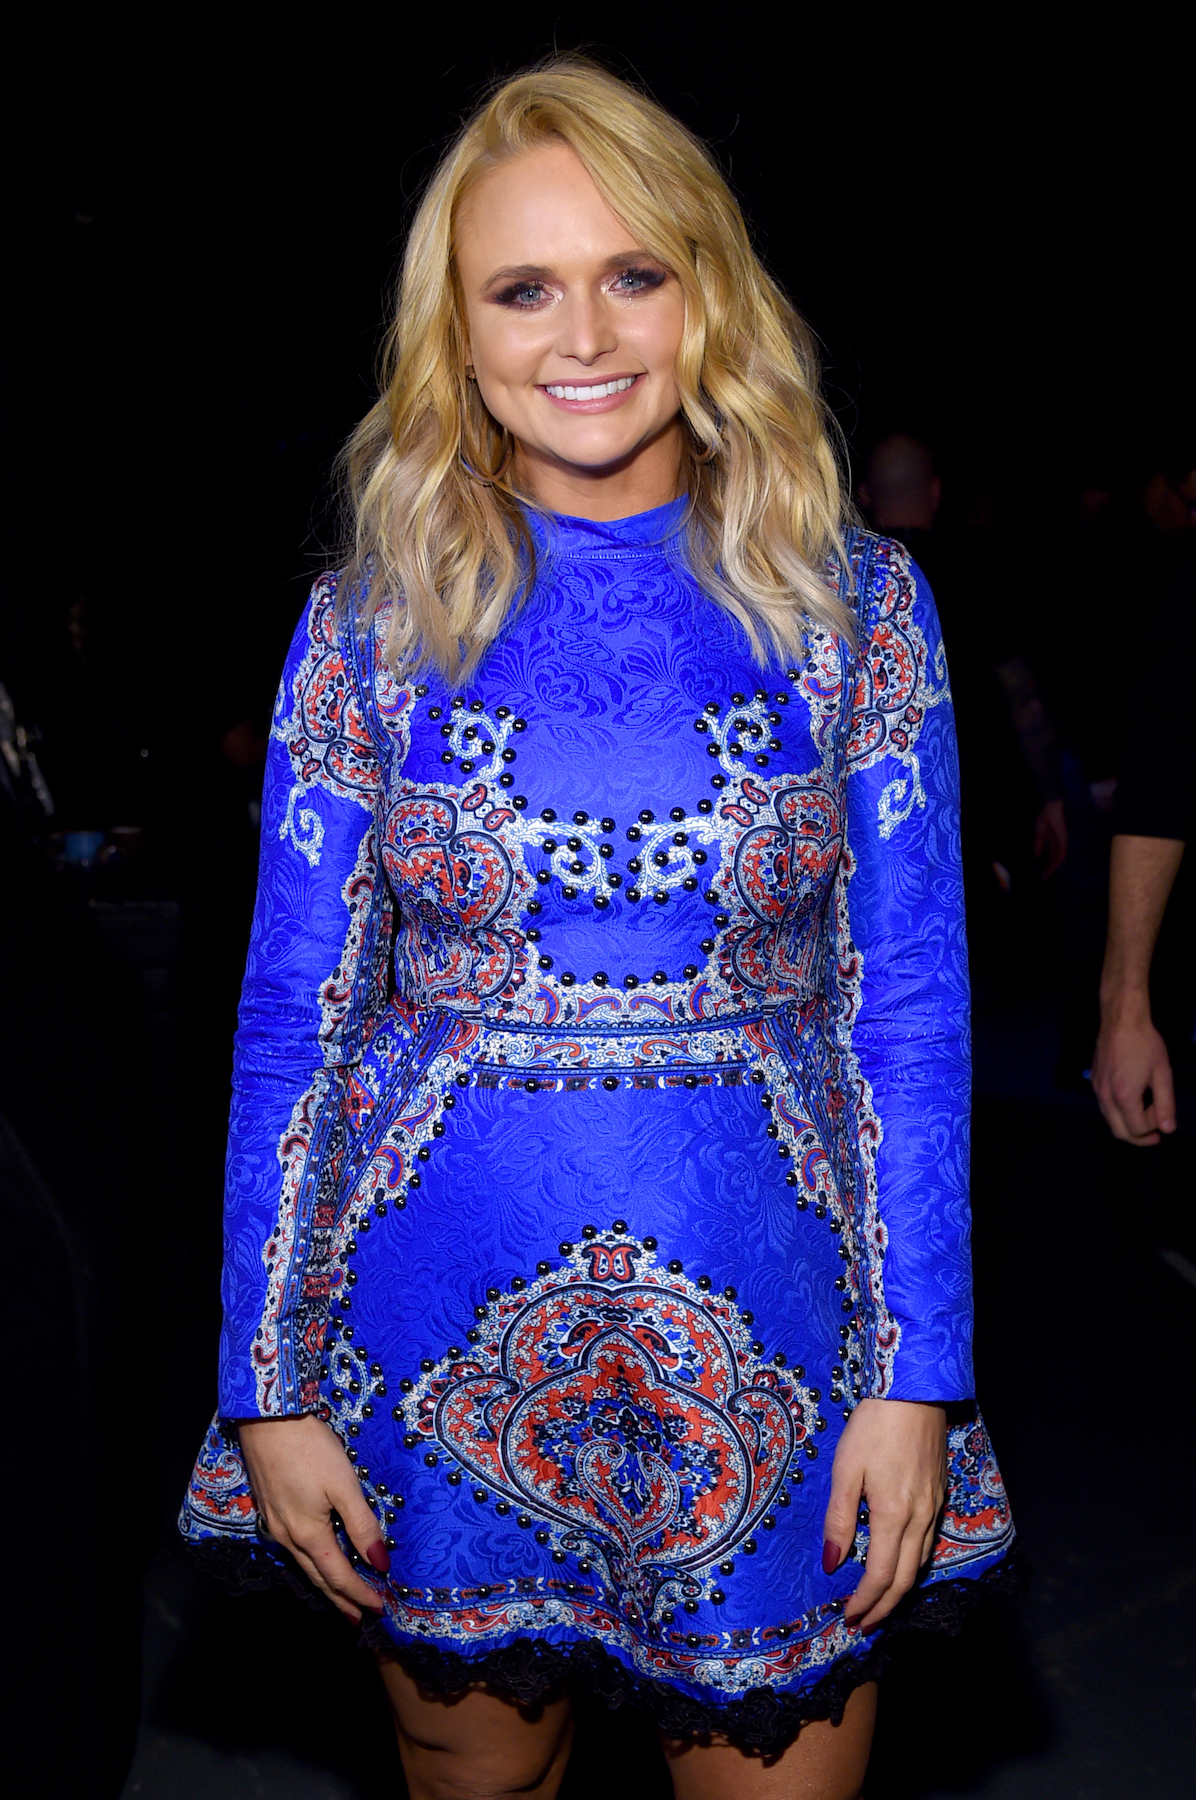 Miranda Lambert Marries Brendan Mcloughlin in Secret Wedding - Miranda Lambert attends backstage during 60th Annual GRAMMY Awards – I'm Still Standing: A GRAMMY Salute To Elton John at the Theater at Madison Square Garden on January 29, 2018 in New York City.